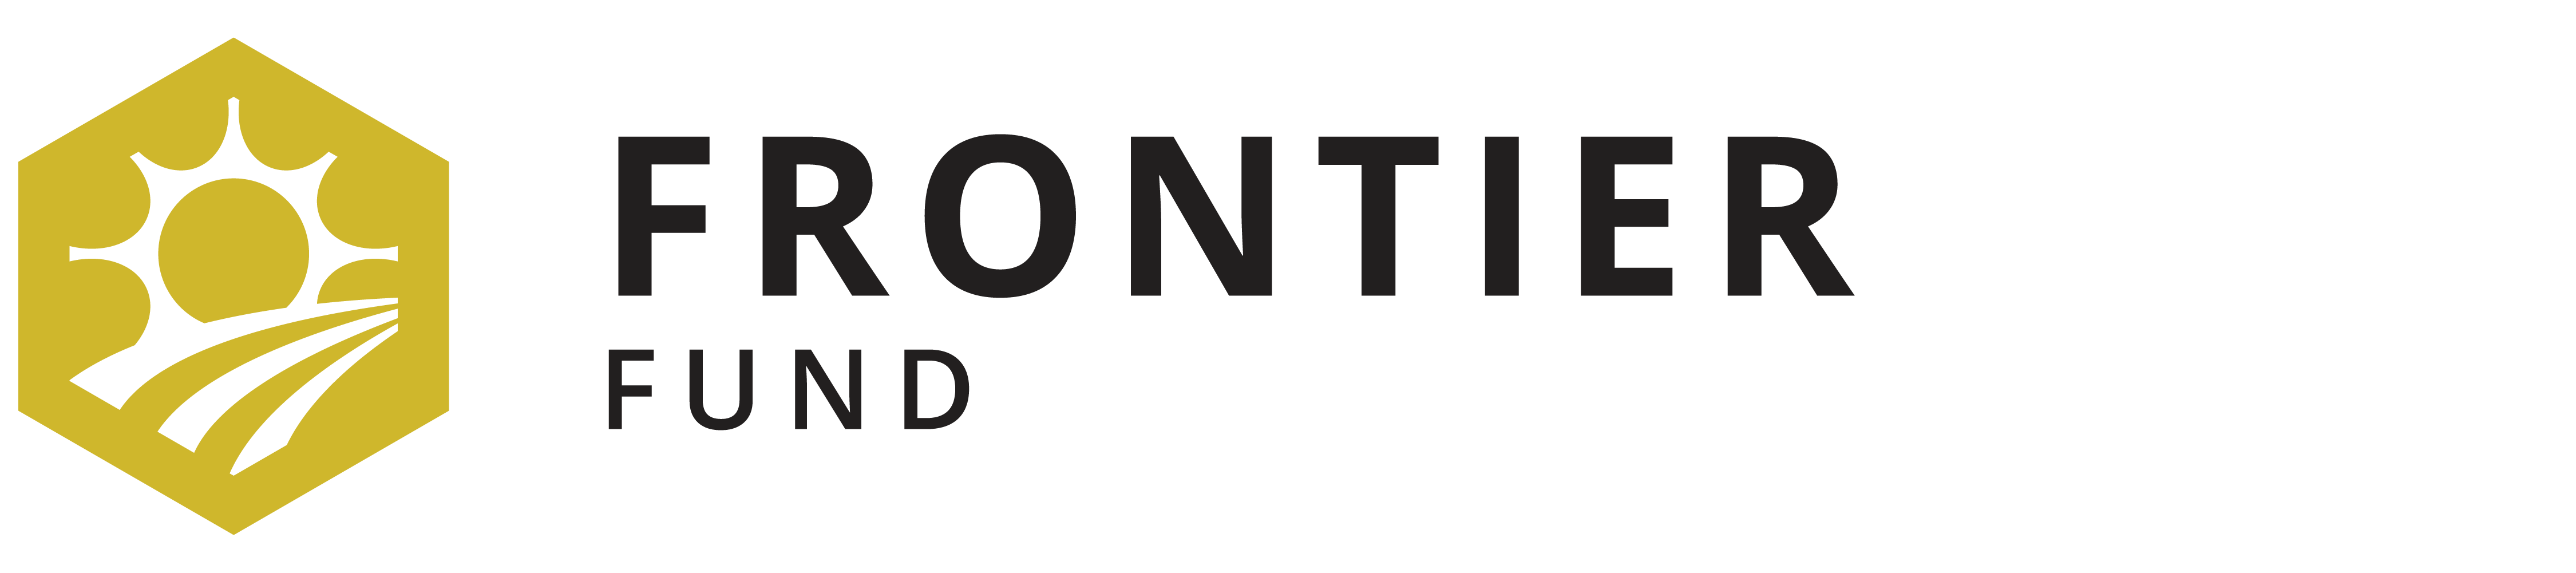 Frontier Fund | Alumni Ventures Group